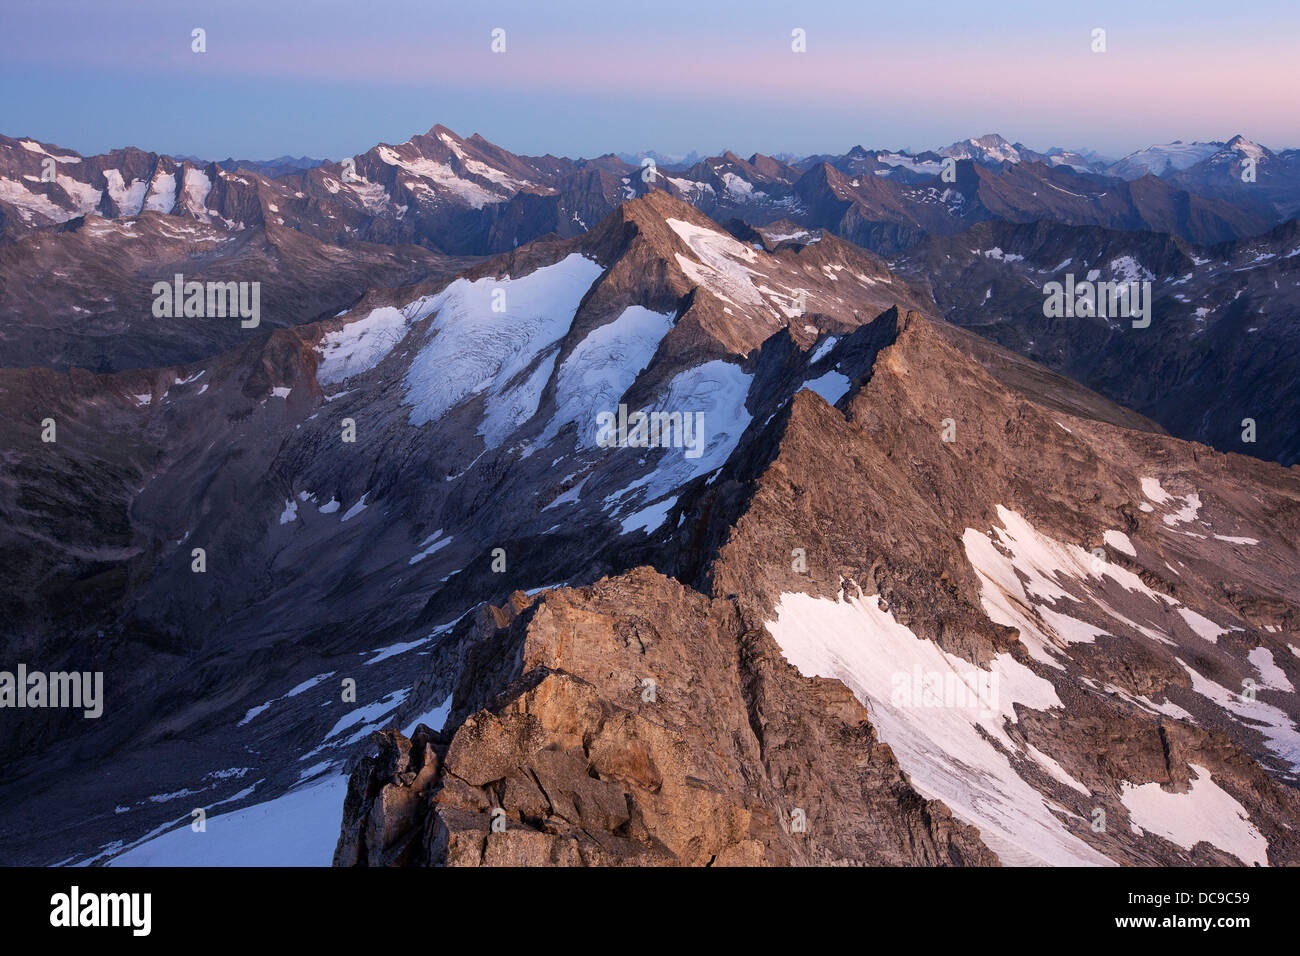 Zillertal Alps, glaciers, Hohe Tauern Mountains, view from the summit of Reichenspitze towards Dreiherrenspitze - Stock Image